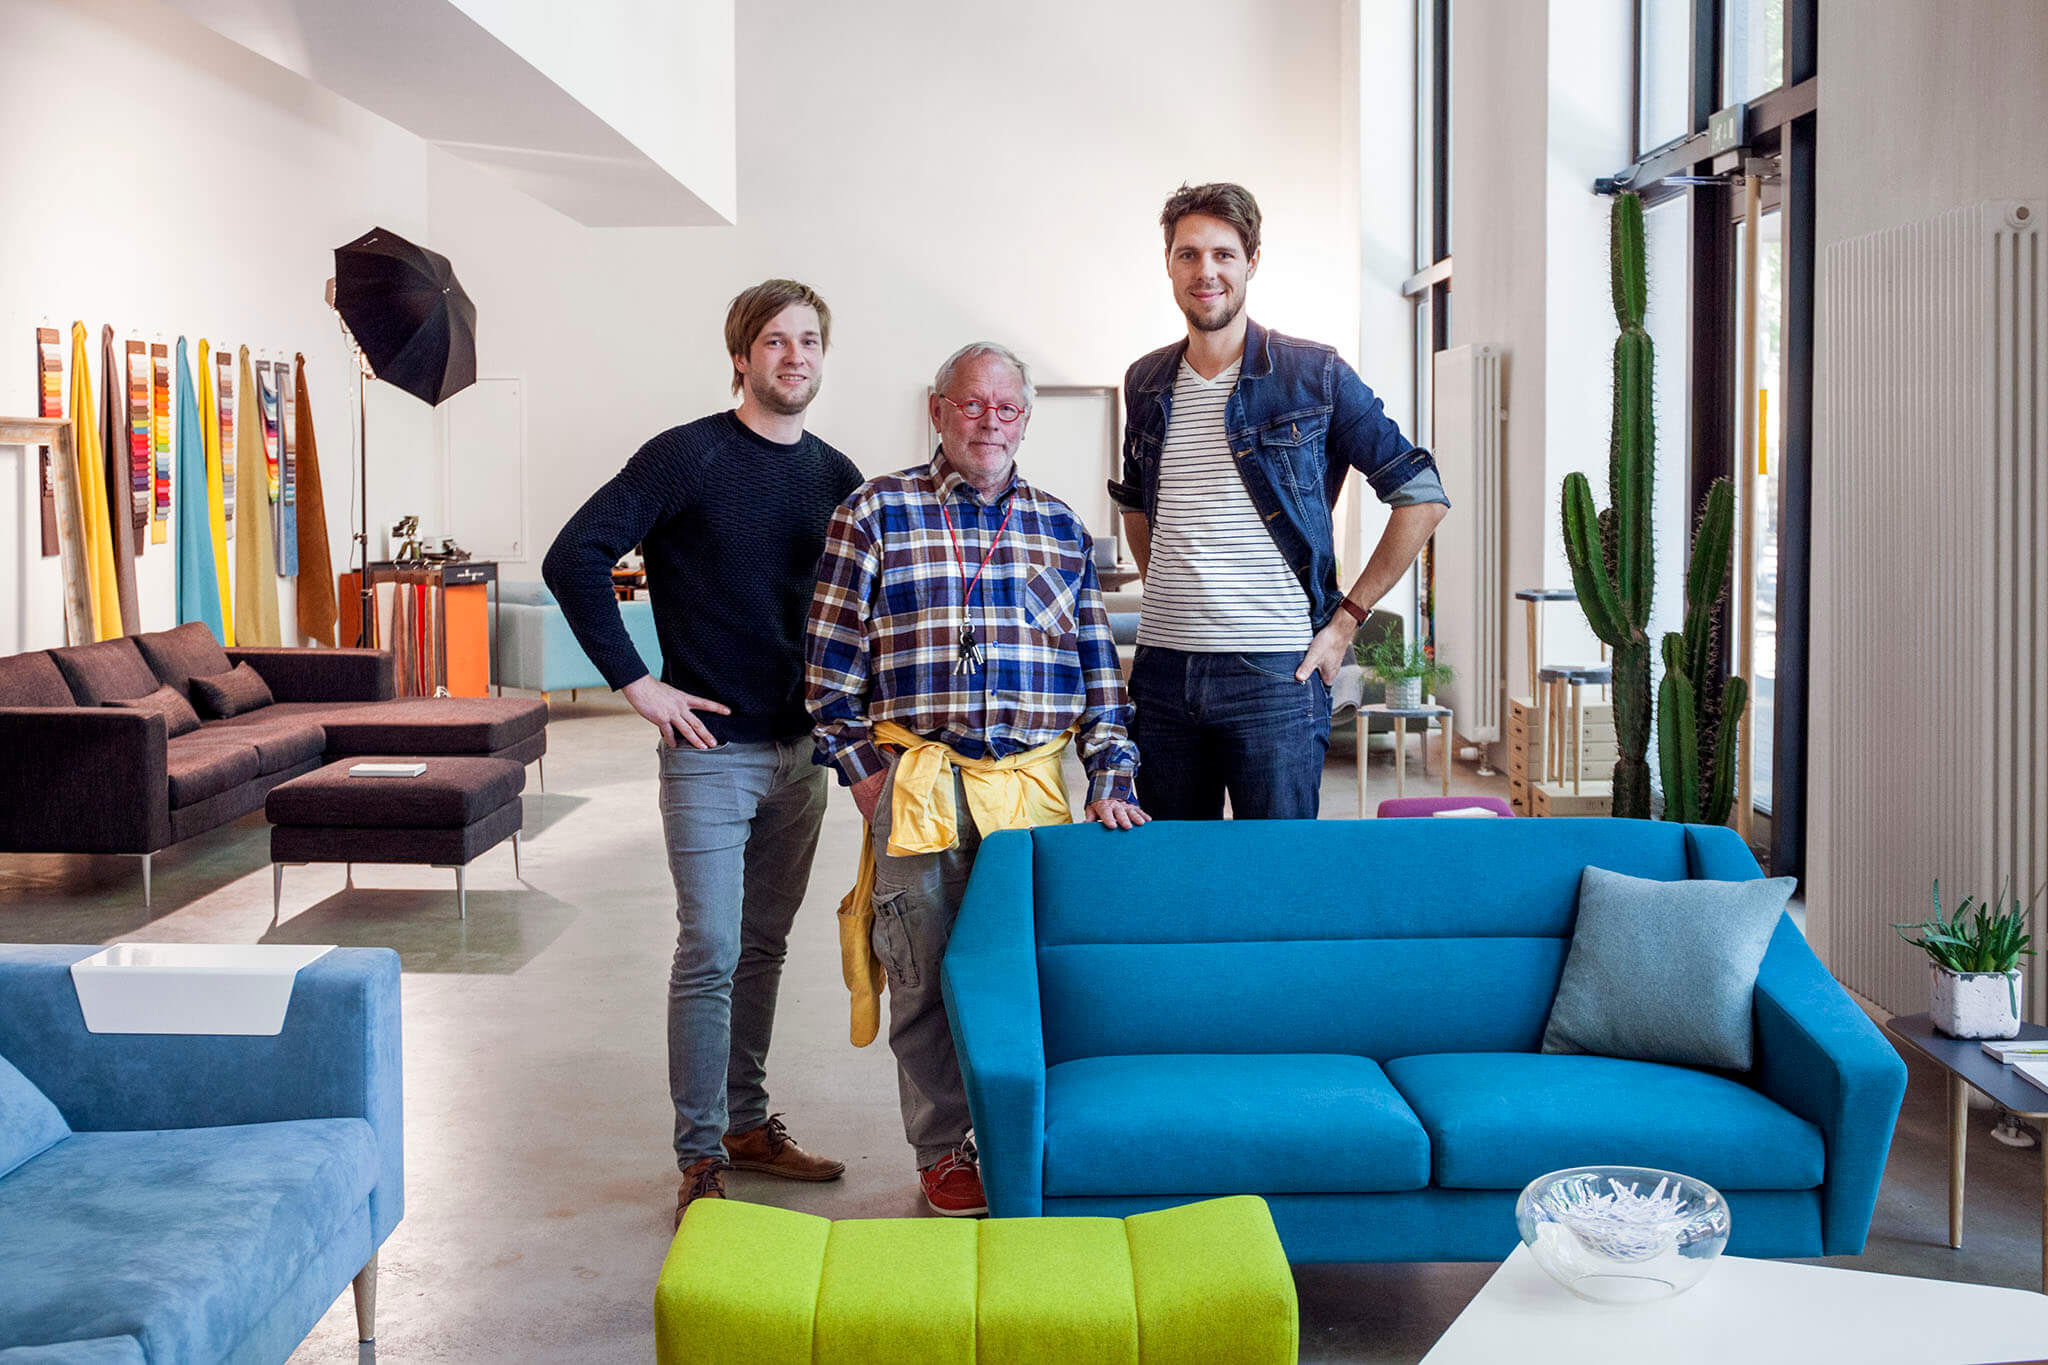 Finnish Design Legend Ristomatti Ratia visiting | Oot-Oot Blog